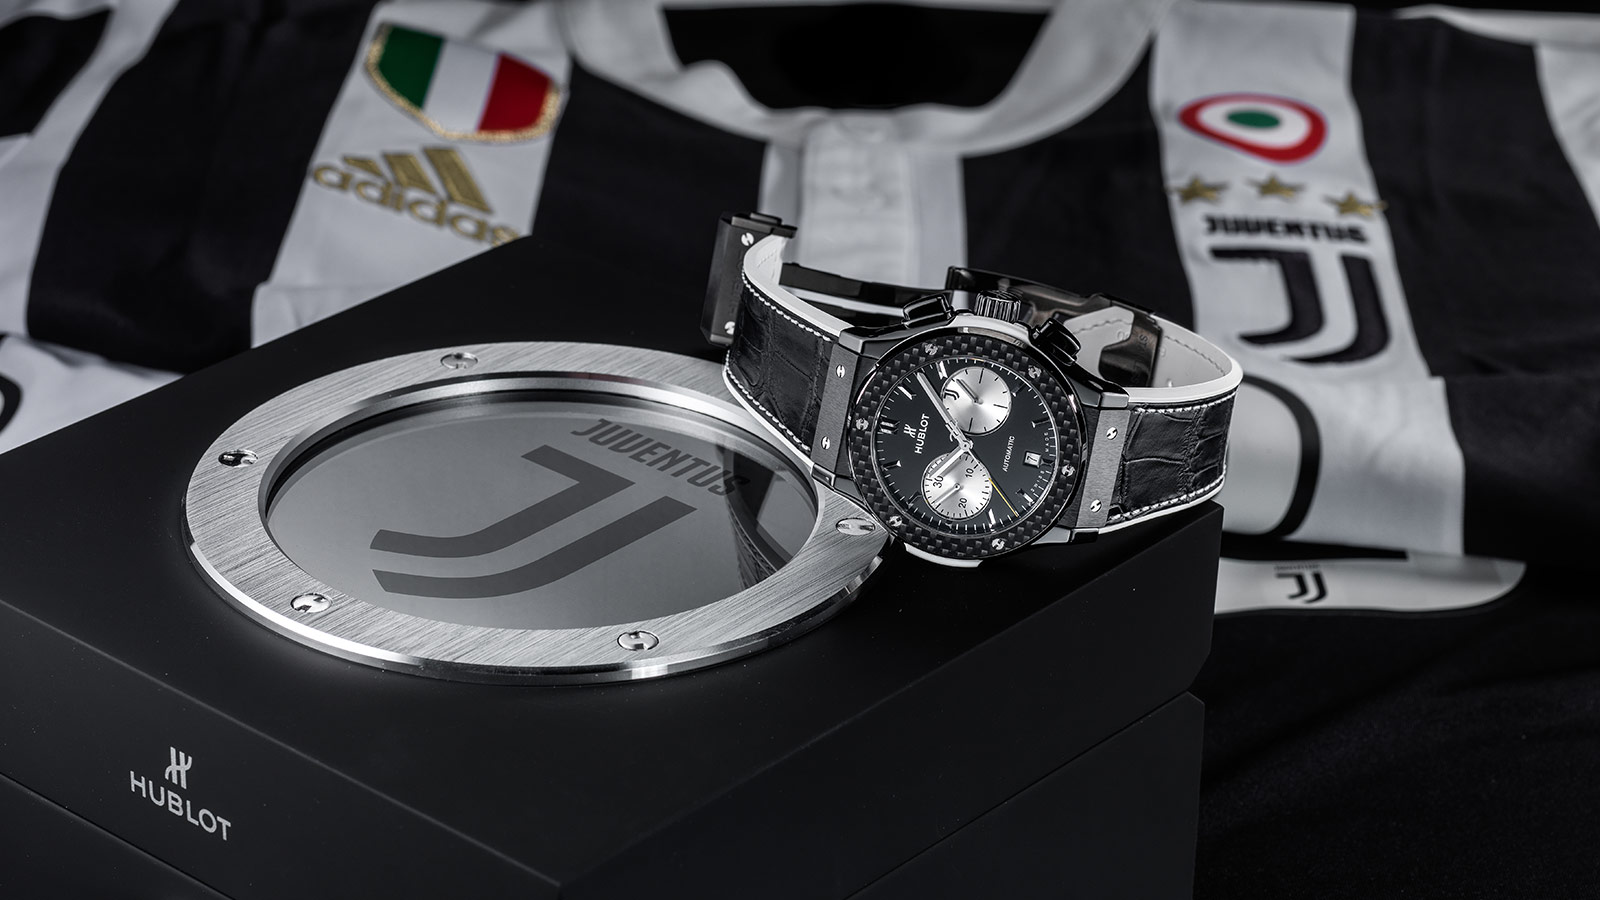 Juventus Watch, Hublot Watch, Luxury Watch, World Cup Players Watches